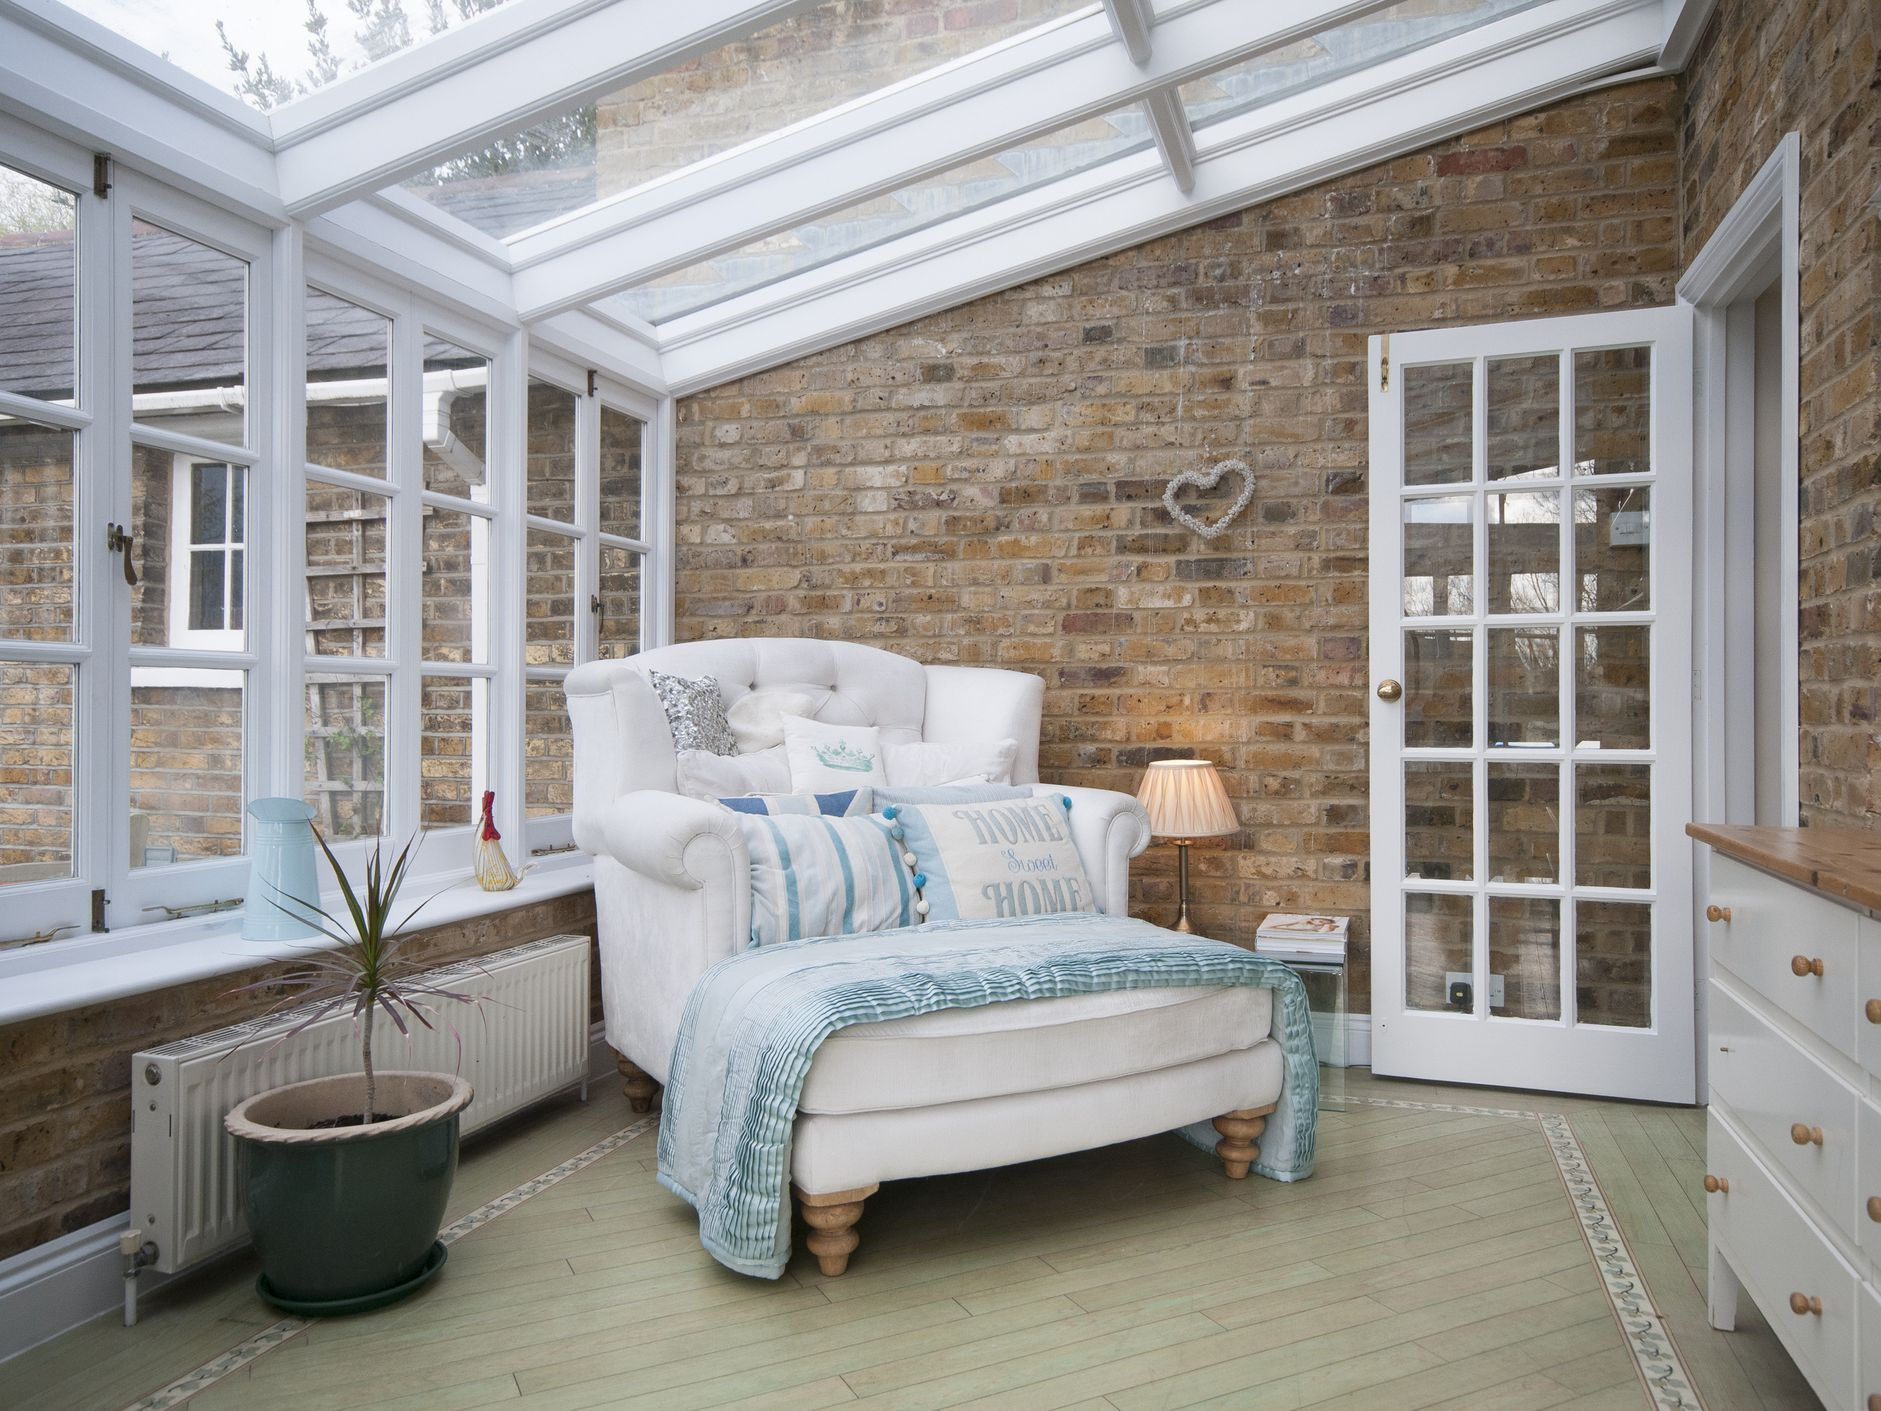 How To Evaluate The Cost Of A Sunroom